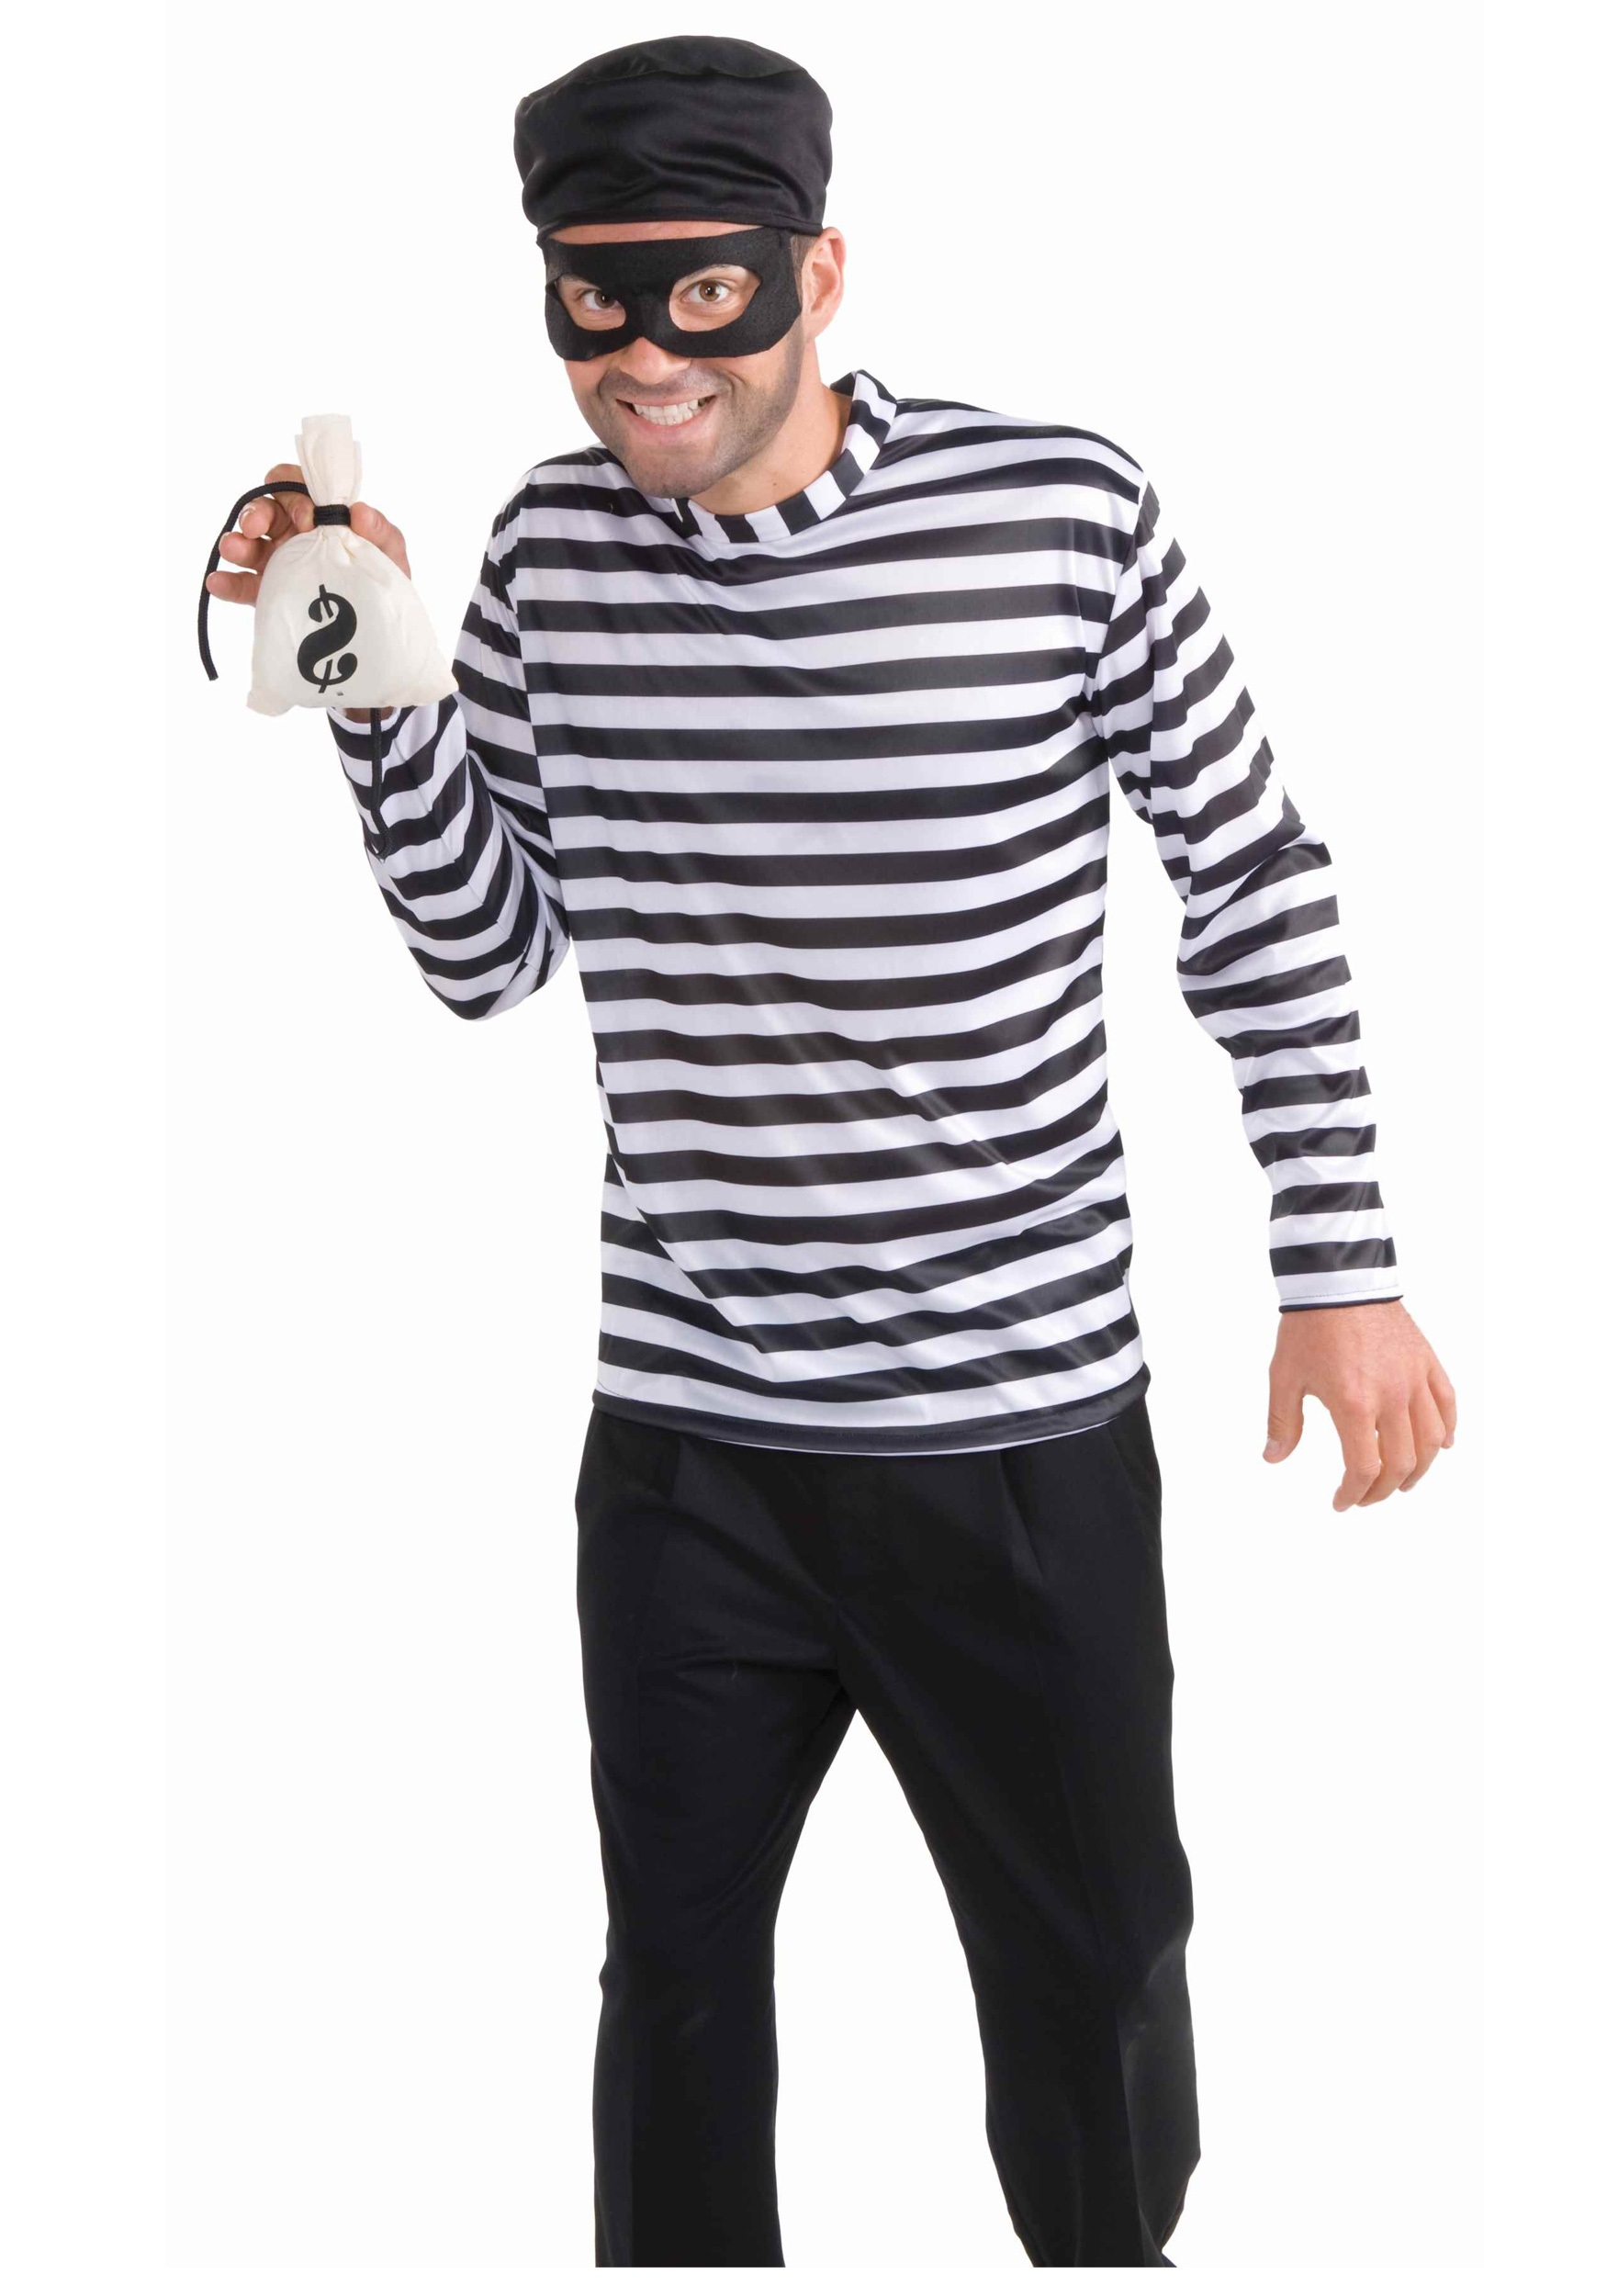 Mens Funny Burglar Costume  sc 1 st  Halloween Costume & Mens Funny Burglar Costume - Adult Thief Halloween Costume